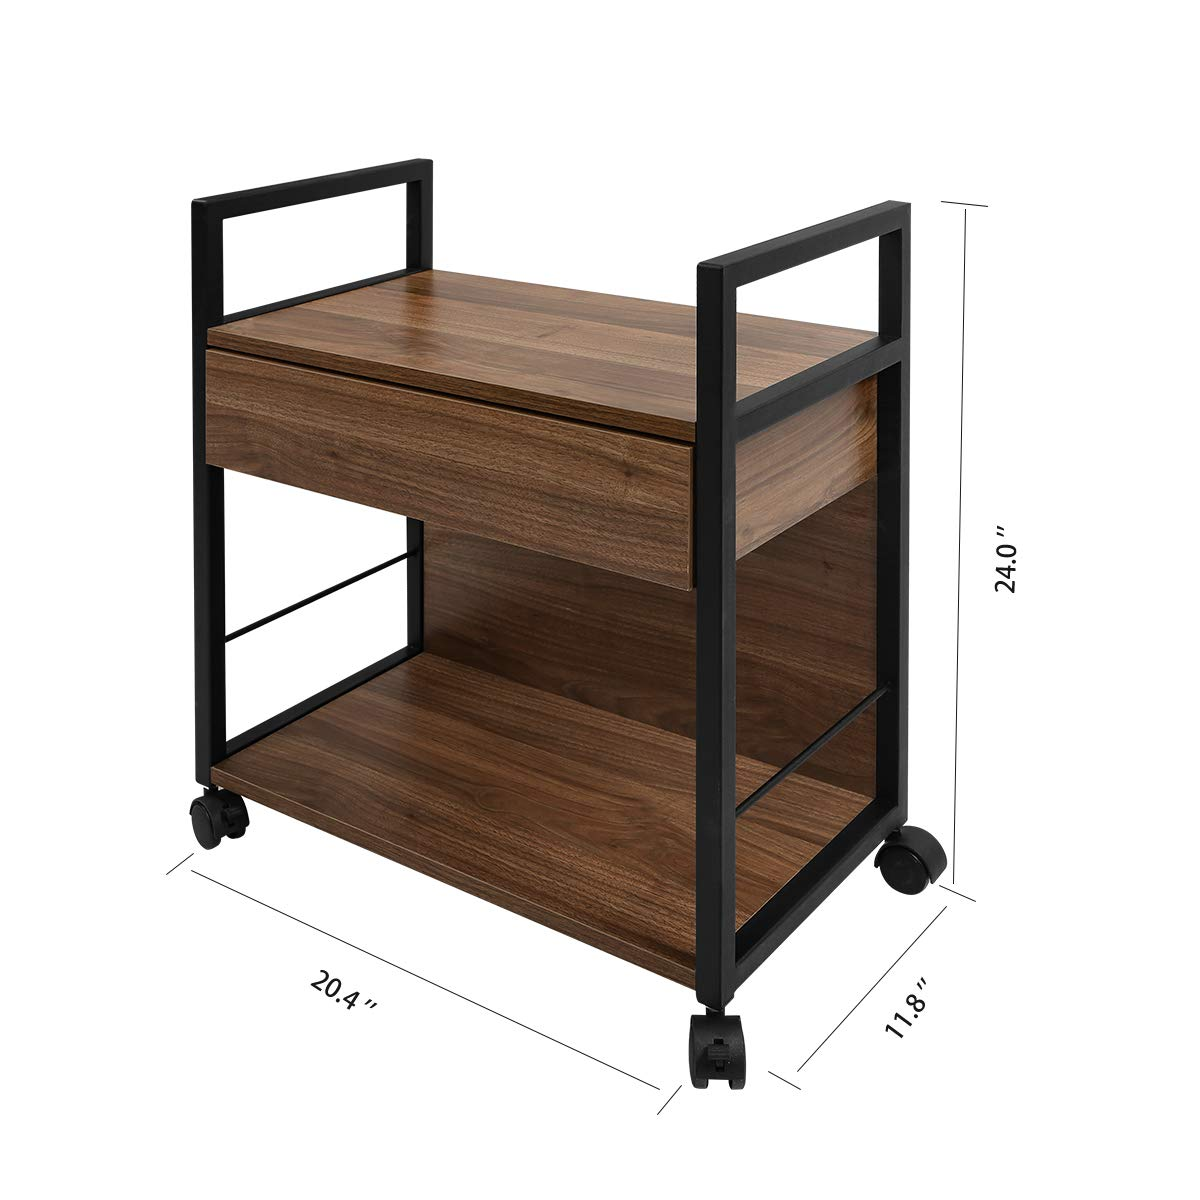 WLIVE Mobile Printer Stand, Office Serving Cart, Computer Side Table Machine Cart Stand with Storage Drawer for Home Office by WLIVE (Image #6)